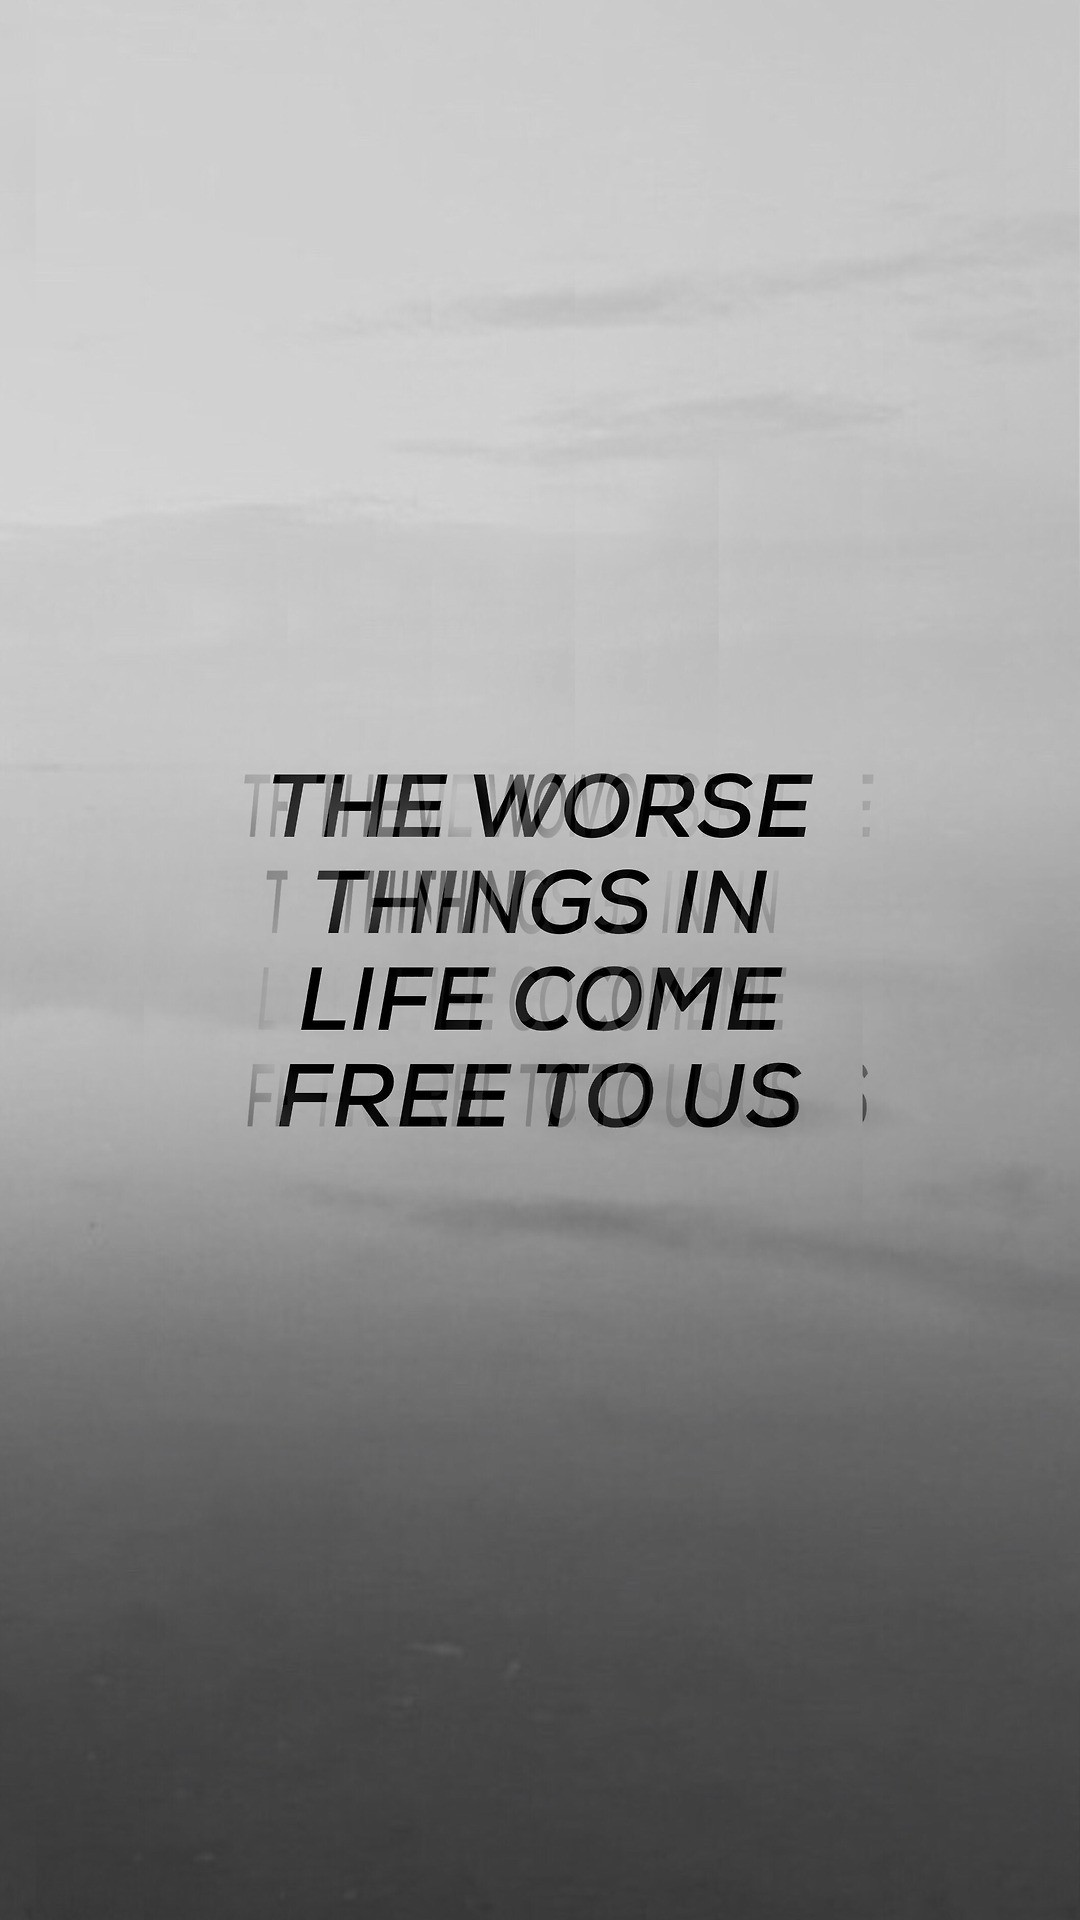 ed sheeran ed sheeran lockscreens ed sheeran wallpapers divide ed sheeran  quotes ed sheeran lyrics ed